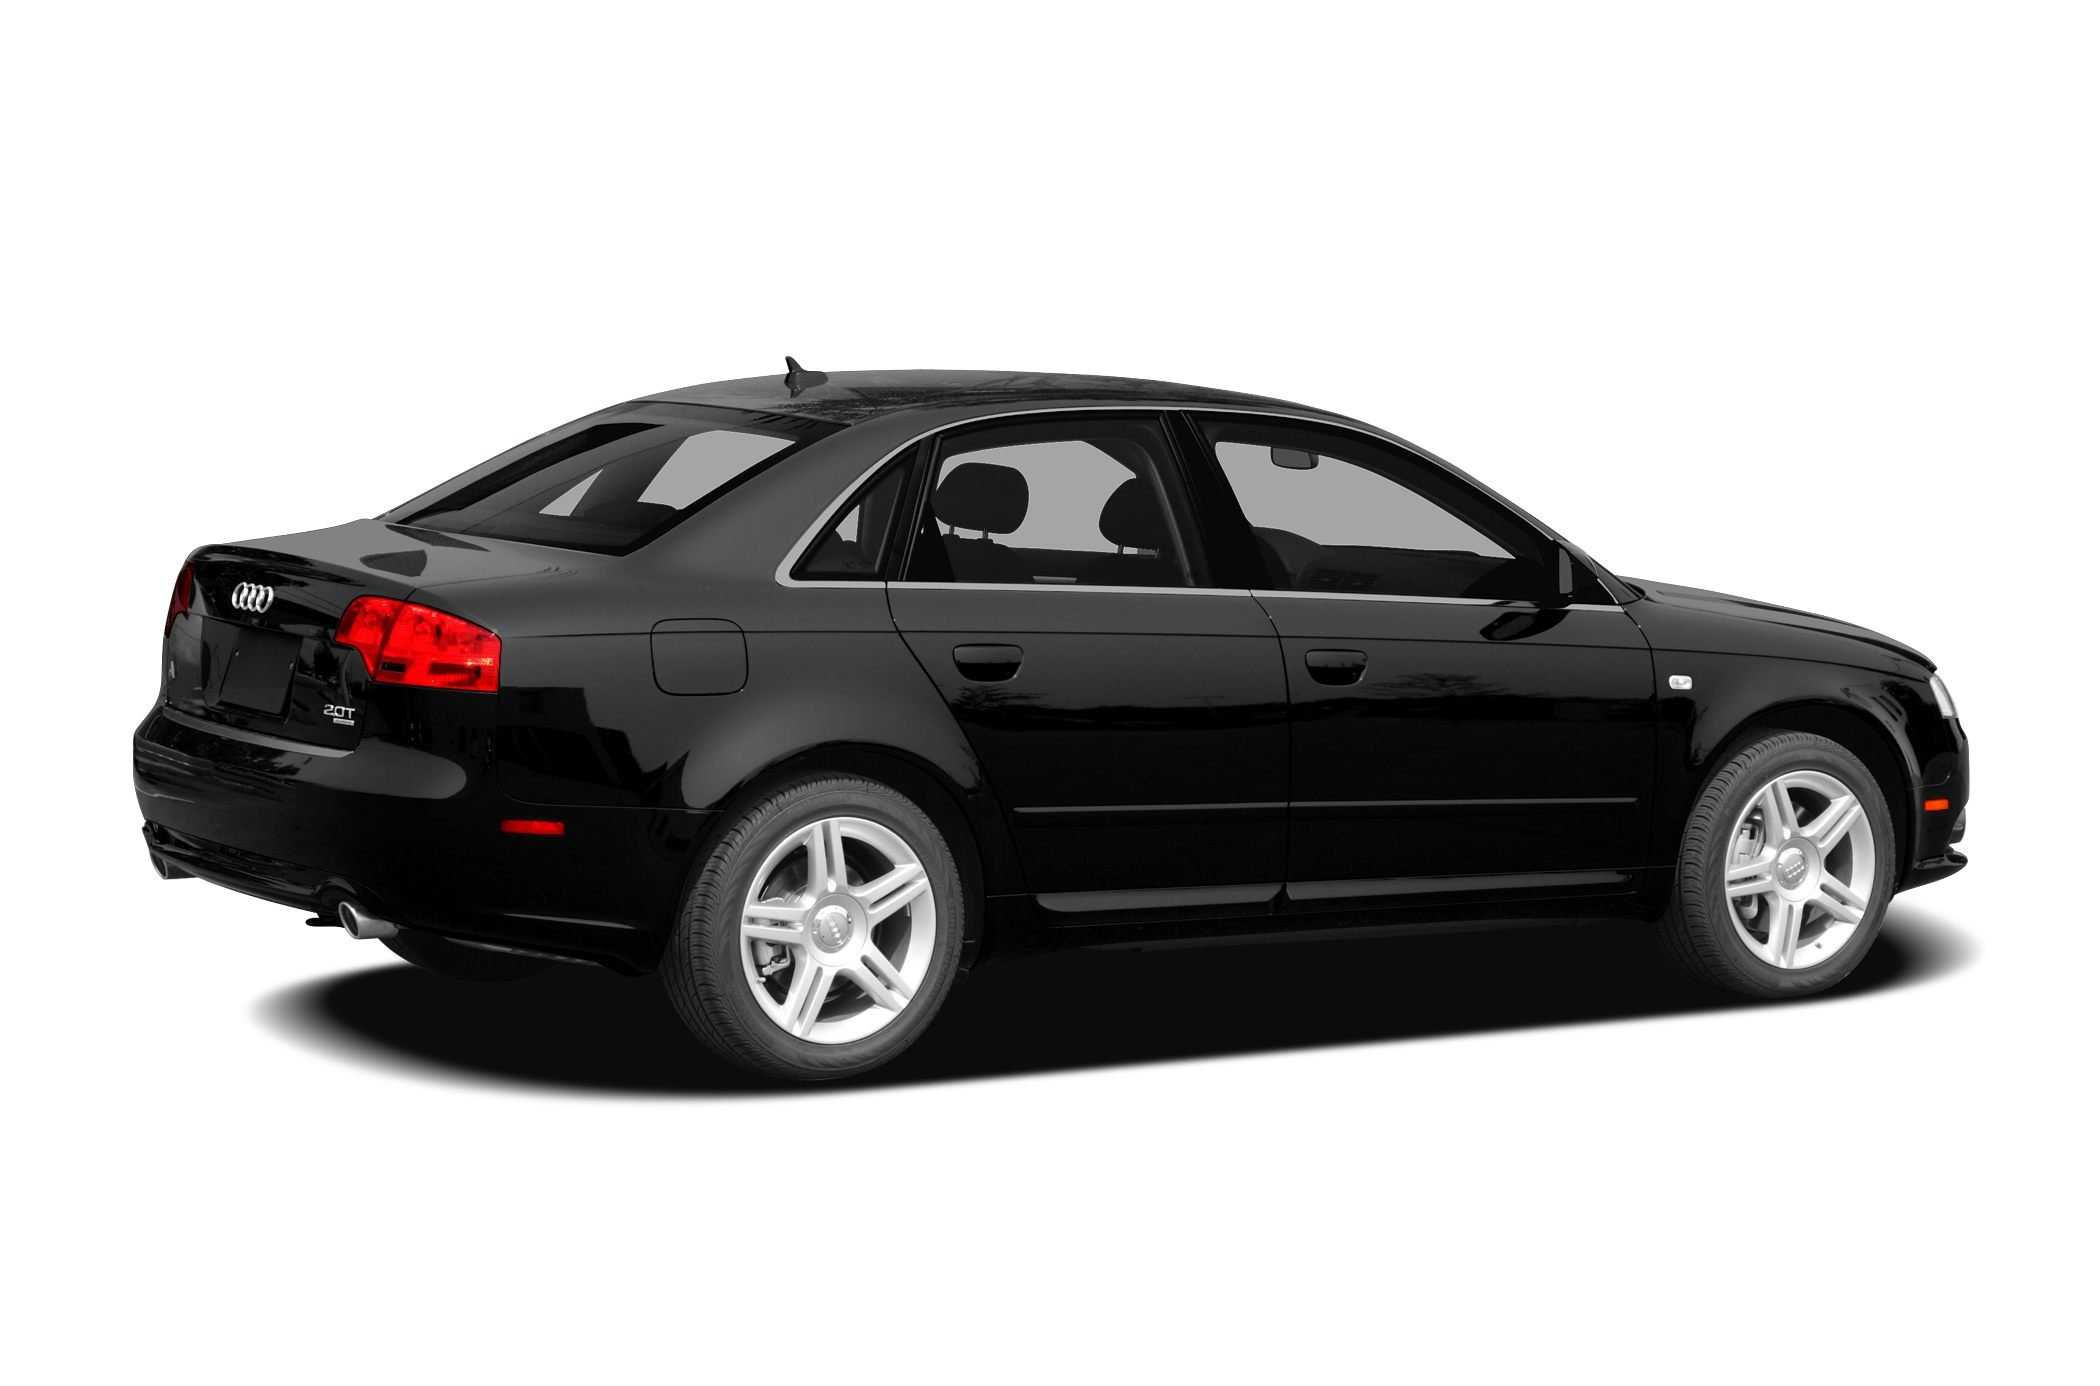 2008 Audi A4 20T quattro Vehicle Options Air Conditioning Front Side Airbag Separate DriverFront